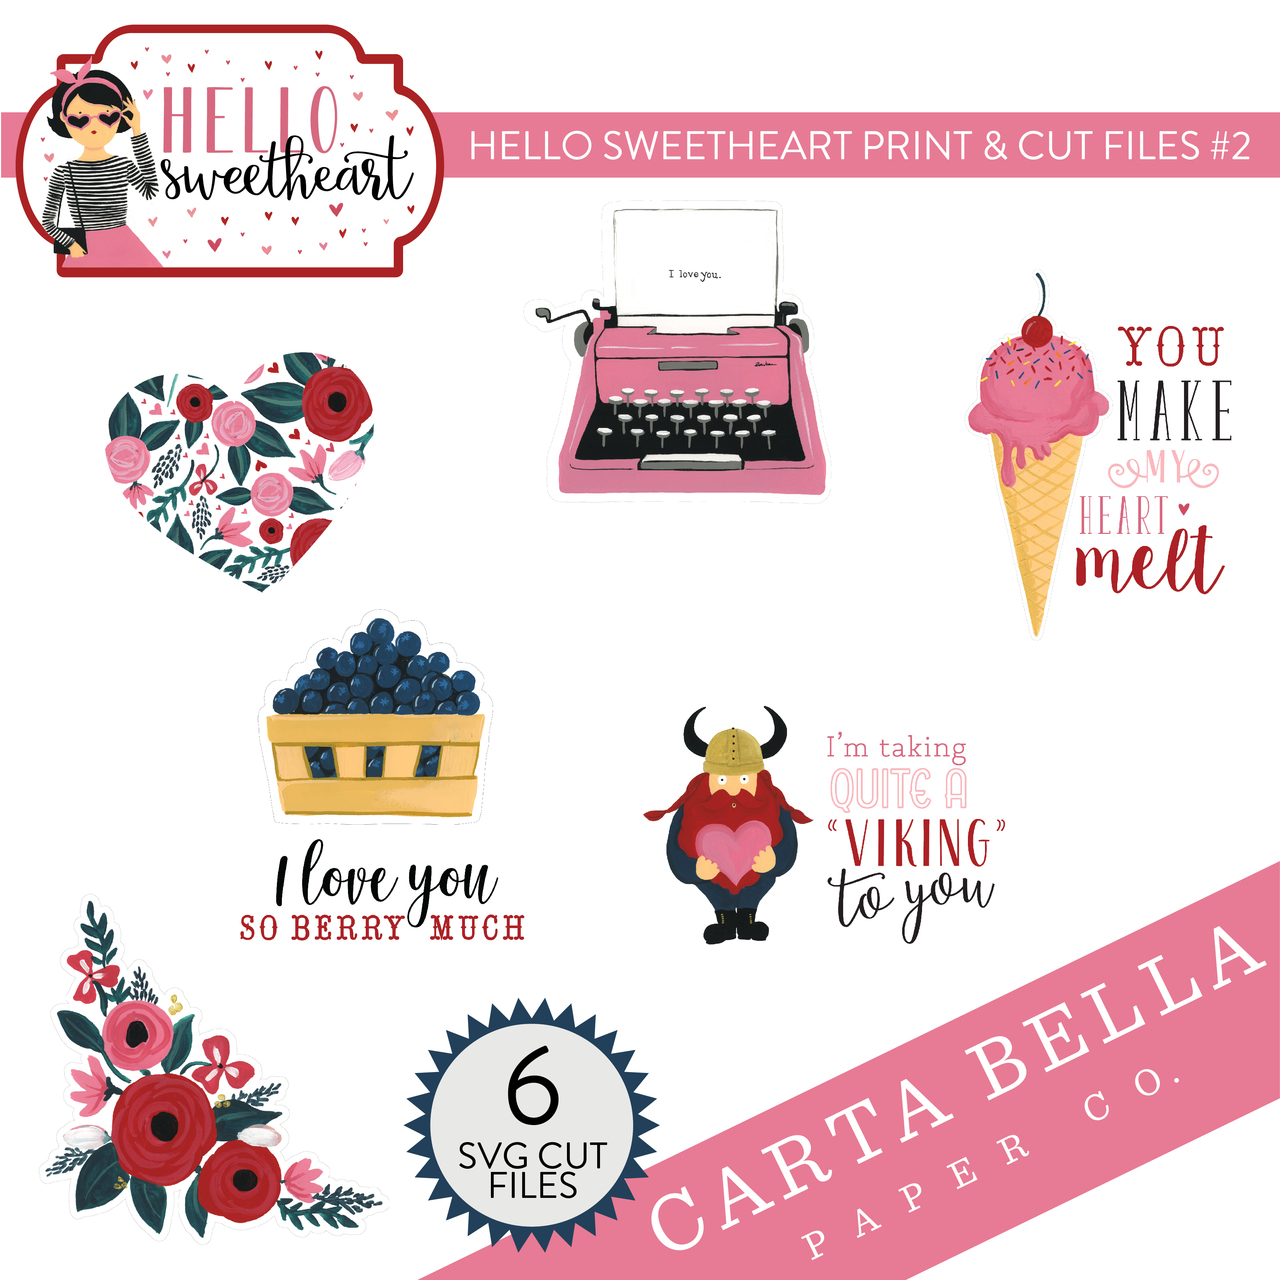 Hello Sweetheart Print & Cut Files #2